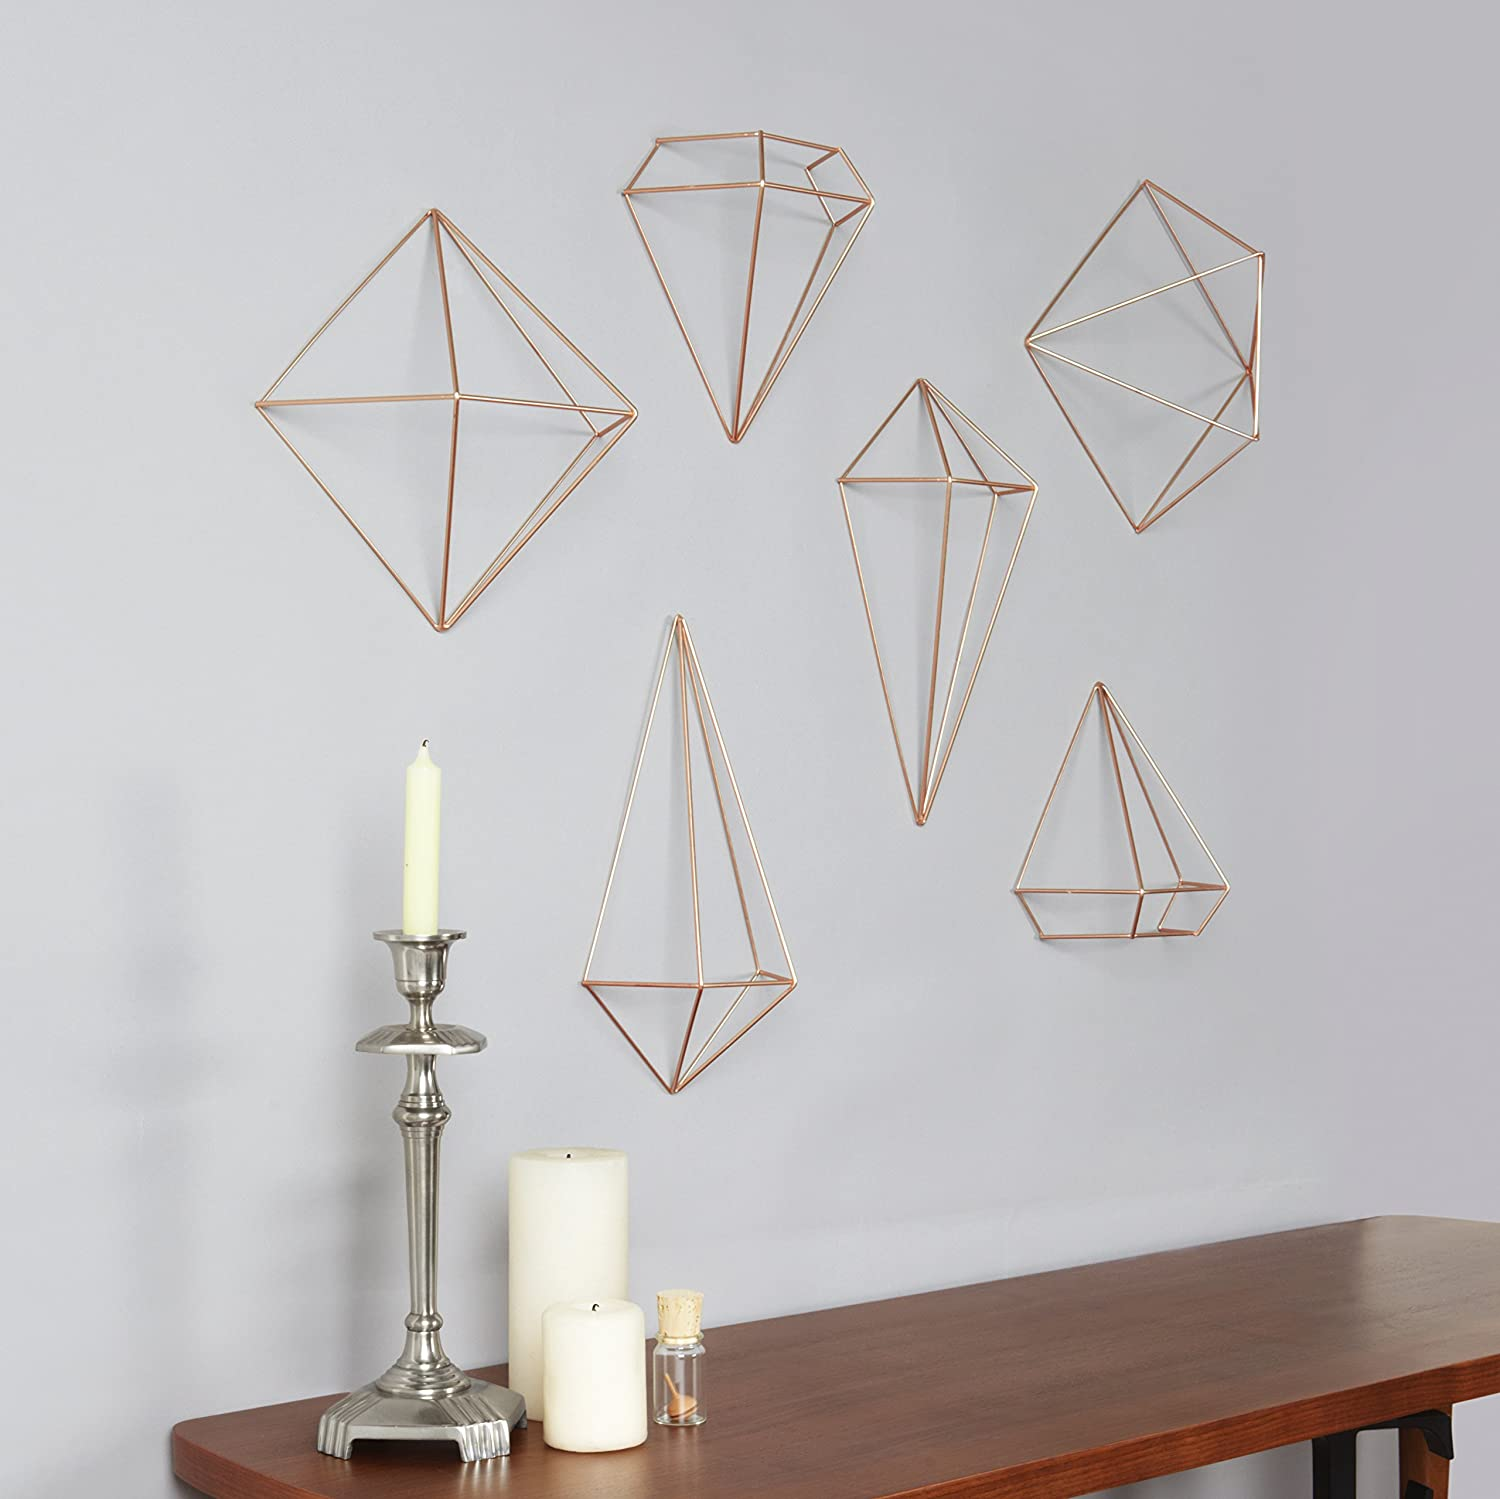 Elegant Amazon.com: Umbra Prisma Decorative Accents, Set Of 6, Copper: Home U0026  Kitchen